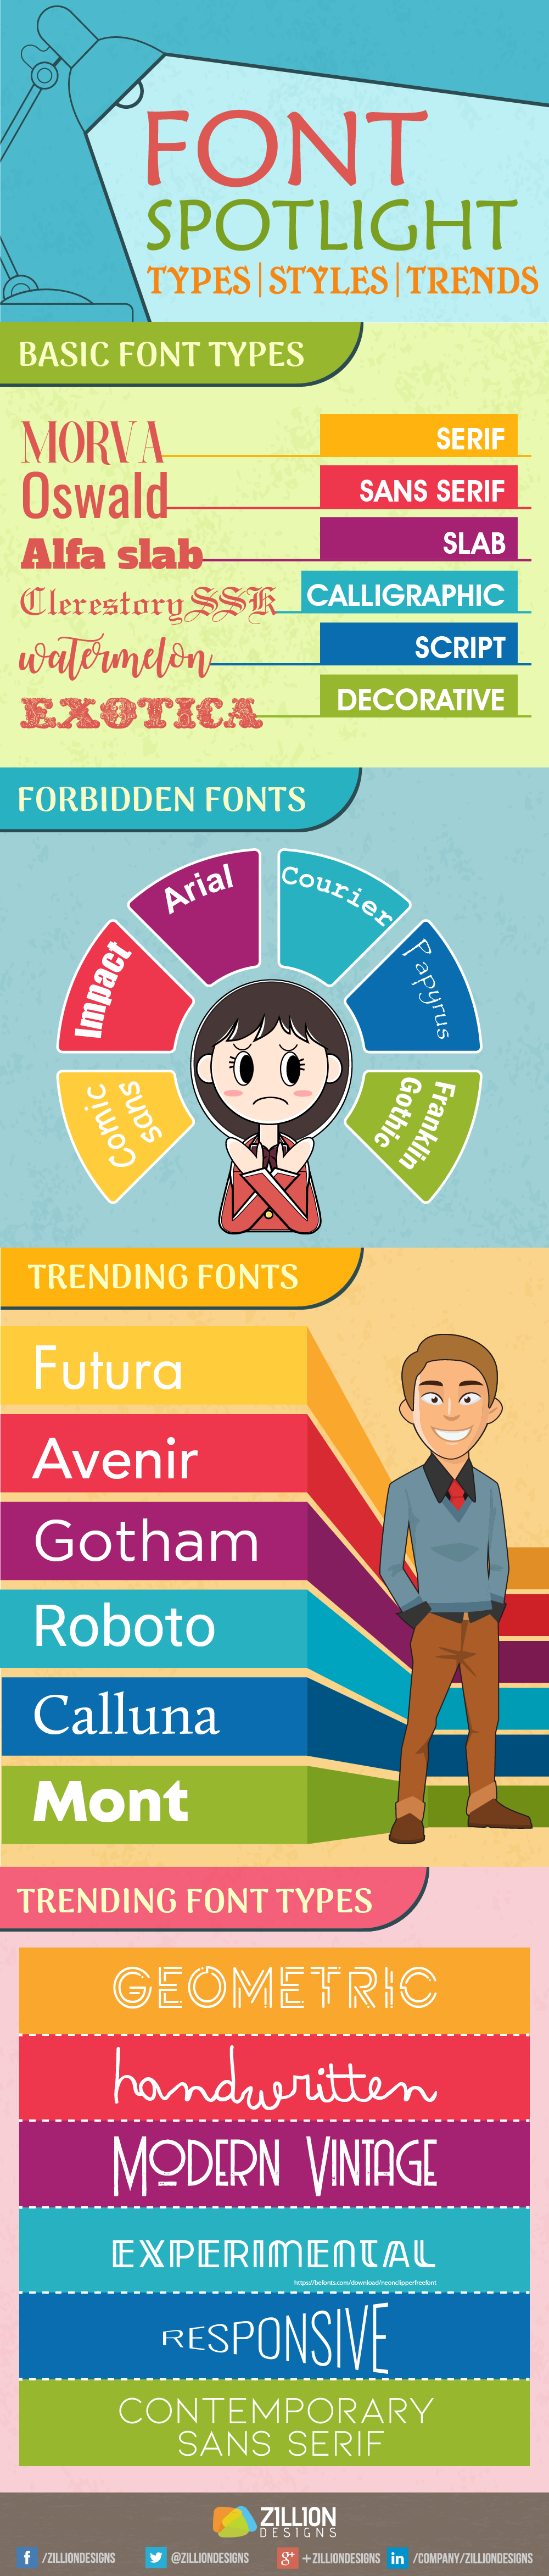 Font Types, Styles, Trends Infographic